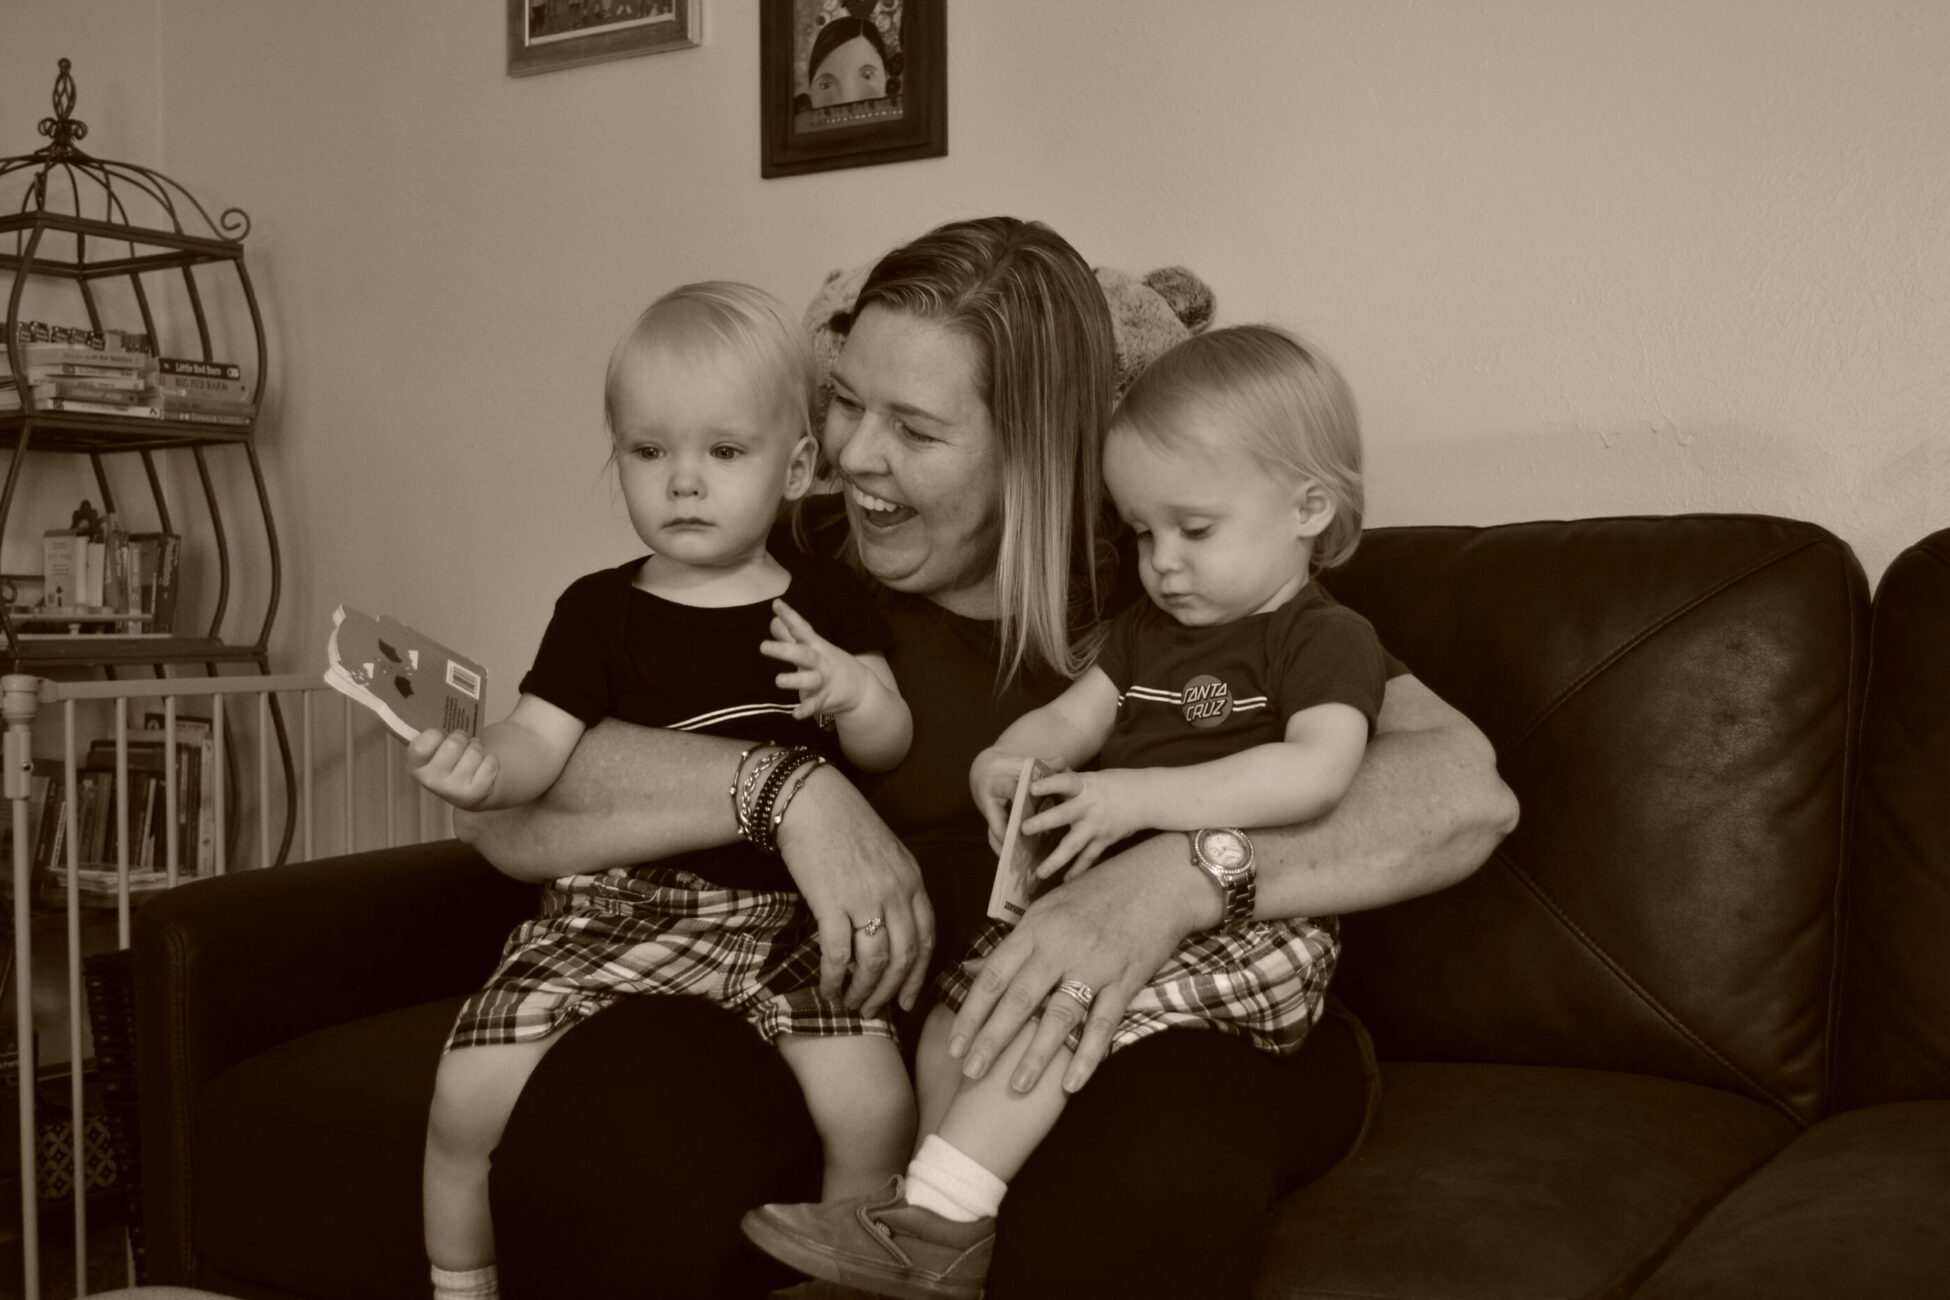 Meg with twins in black and white